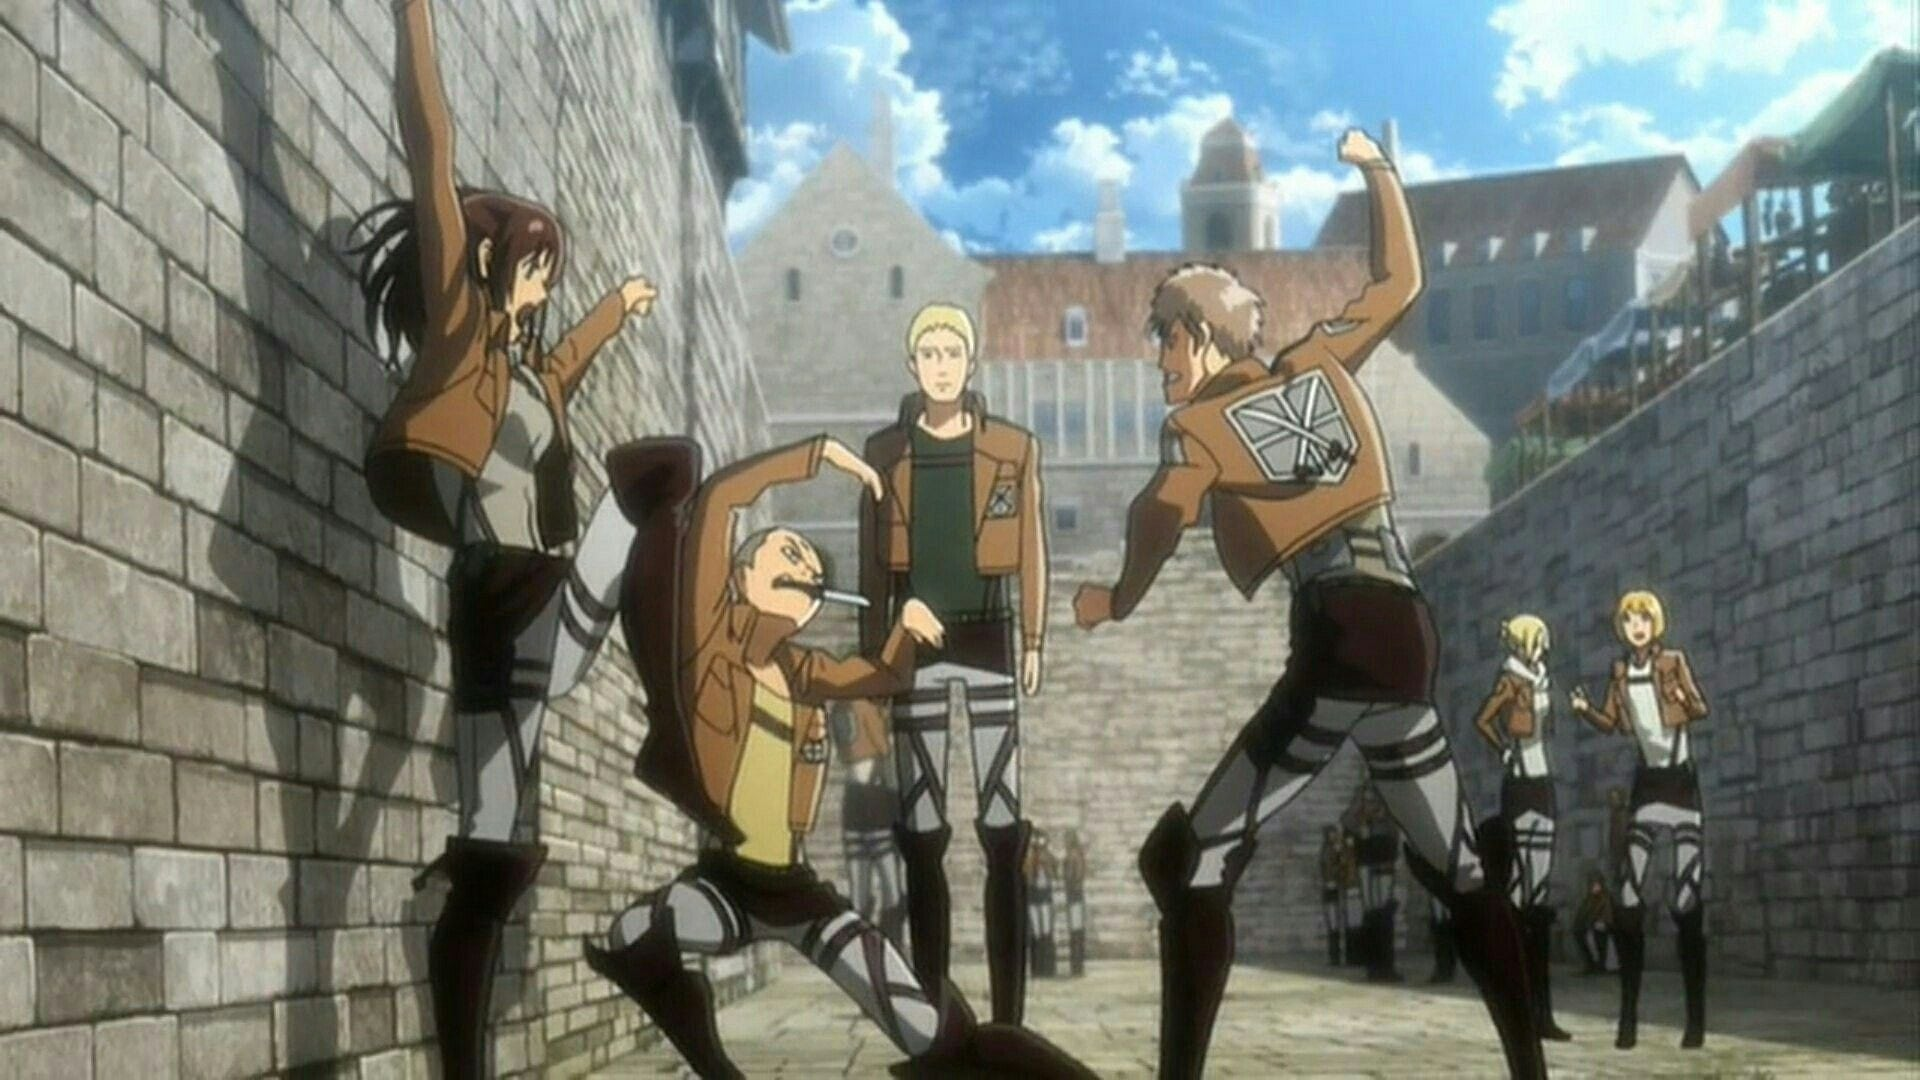 Attack on Titan - Season 0 Episode 12 : The Sudden Visitor: The Torturous Curse of Youth